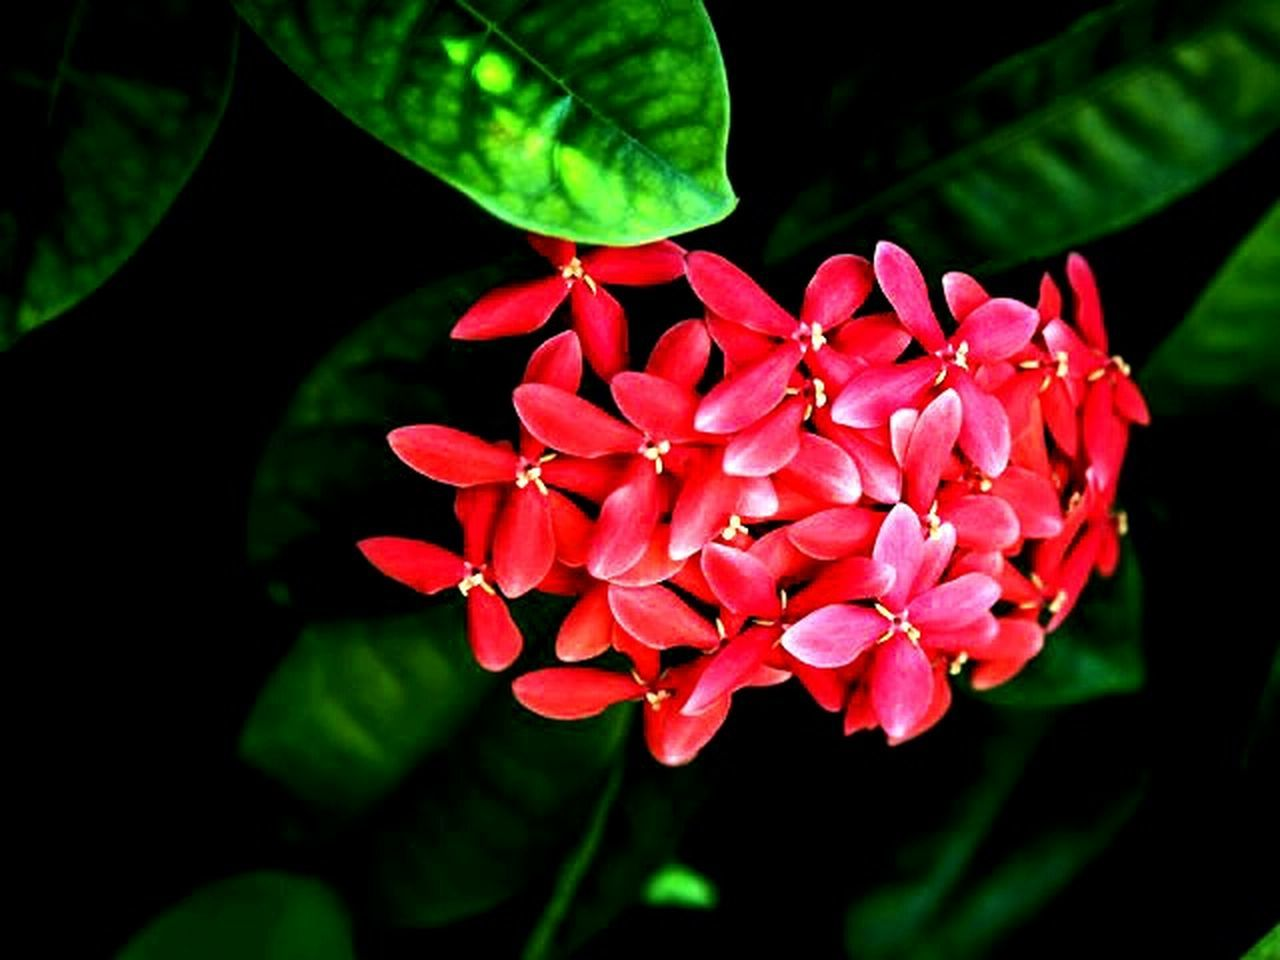 flower, beauty in nature, petal, growth, nature, fragility, freshness, red, leaf, flower head, close-up, plant, no people, outdoors, day, blooming